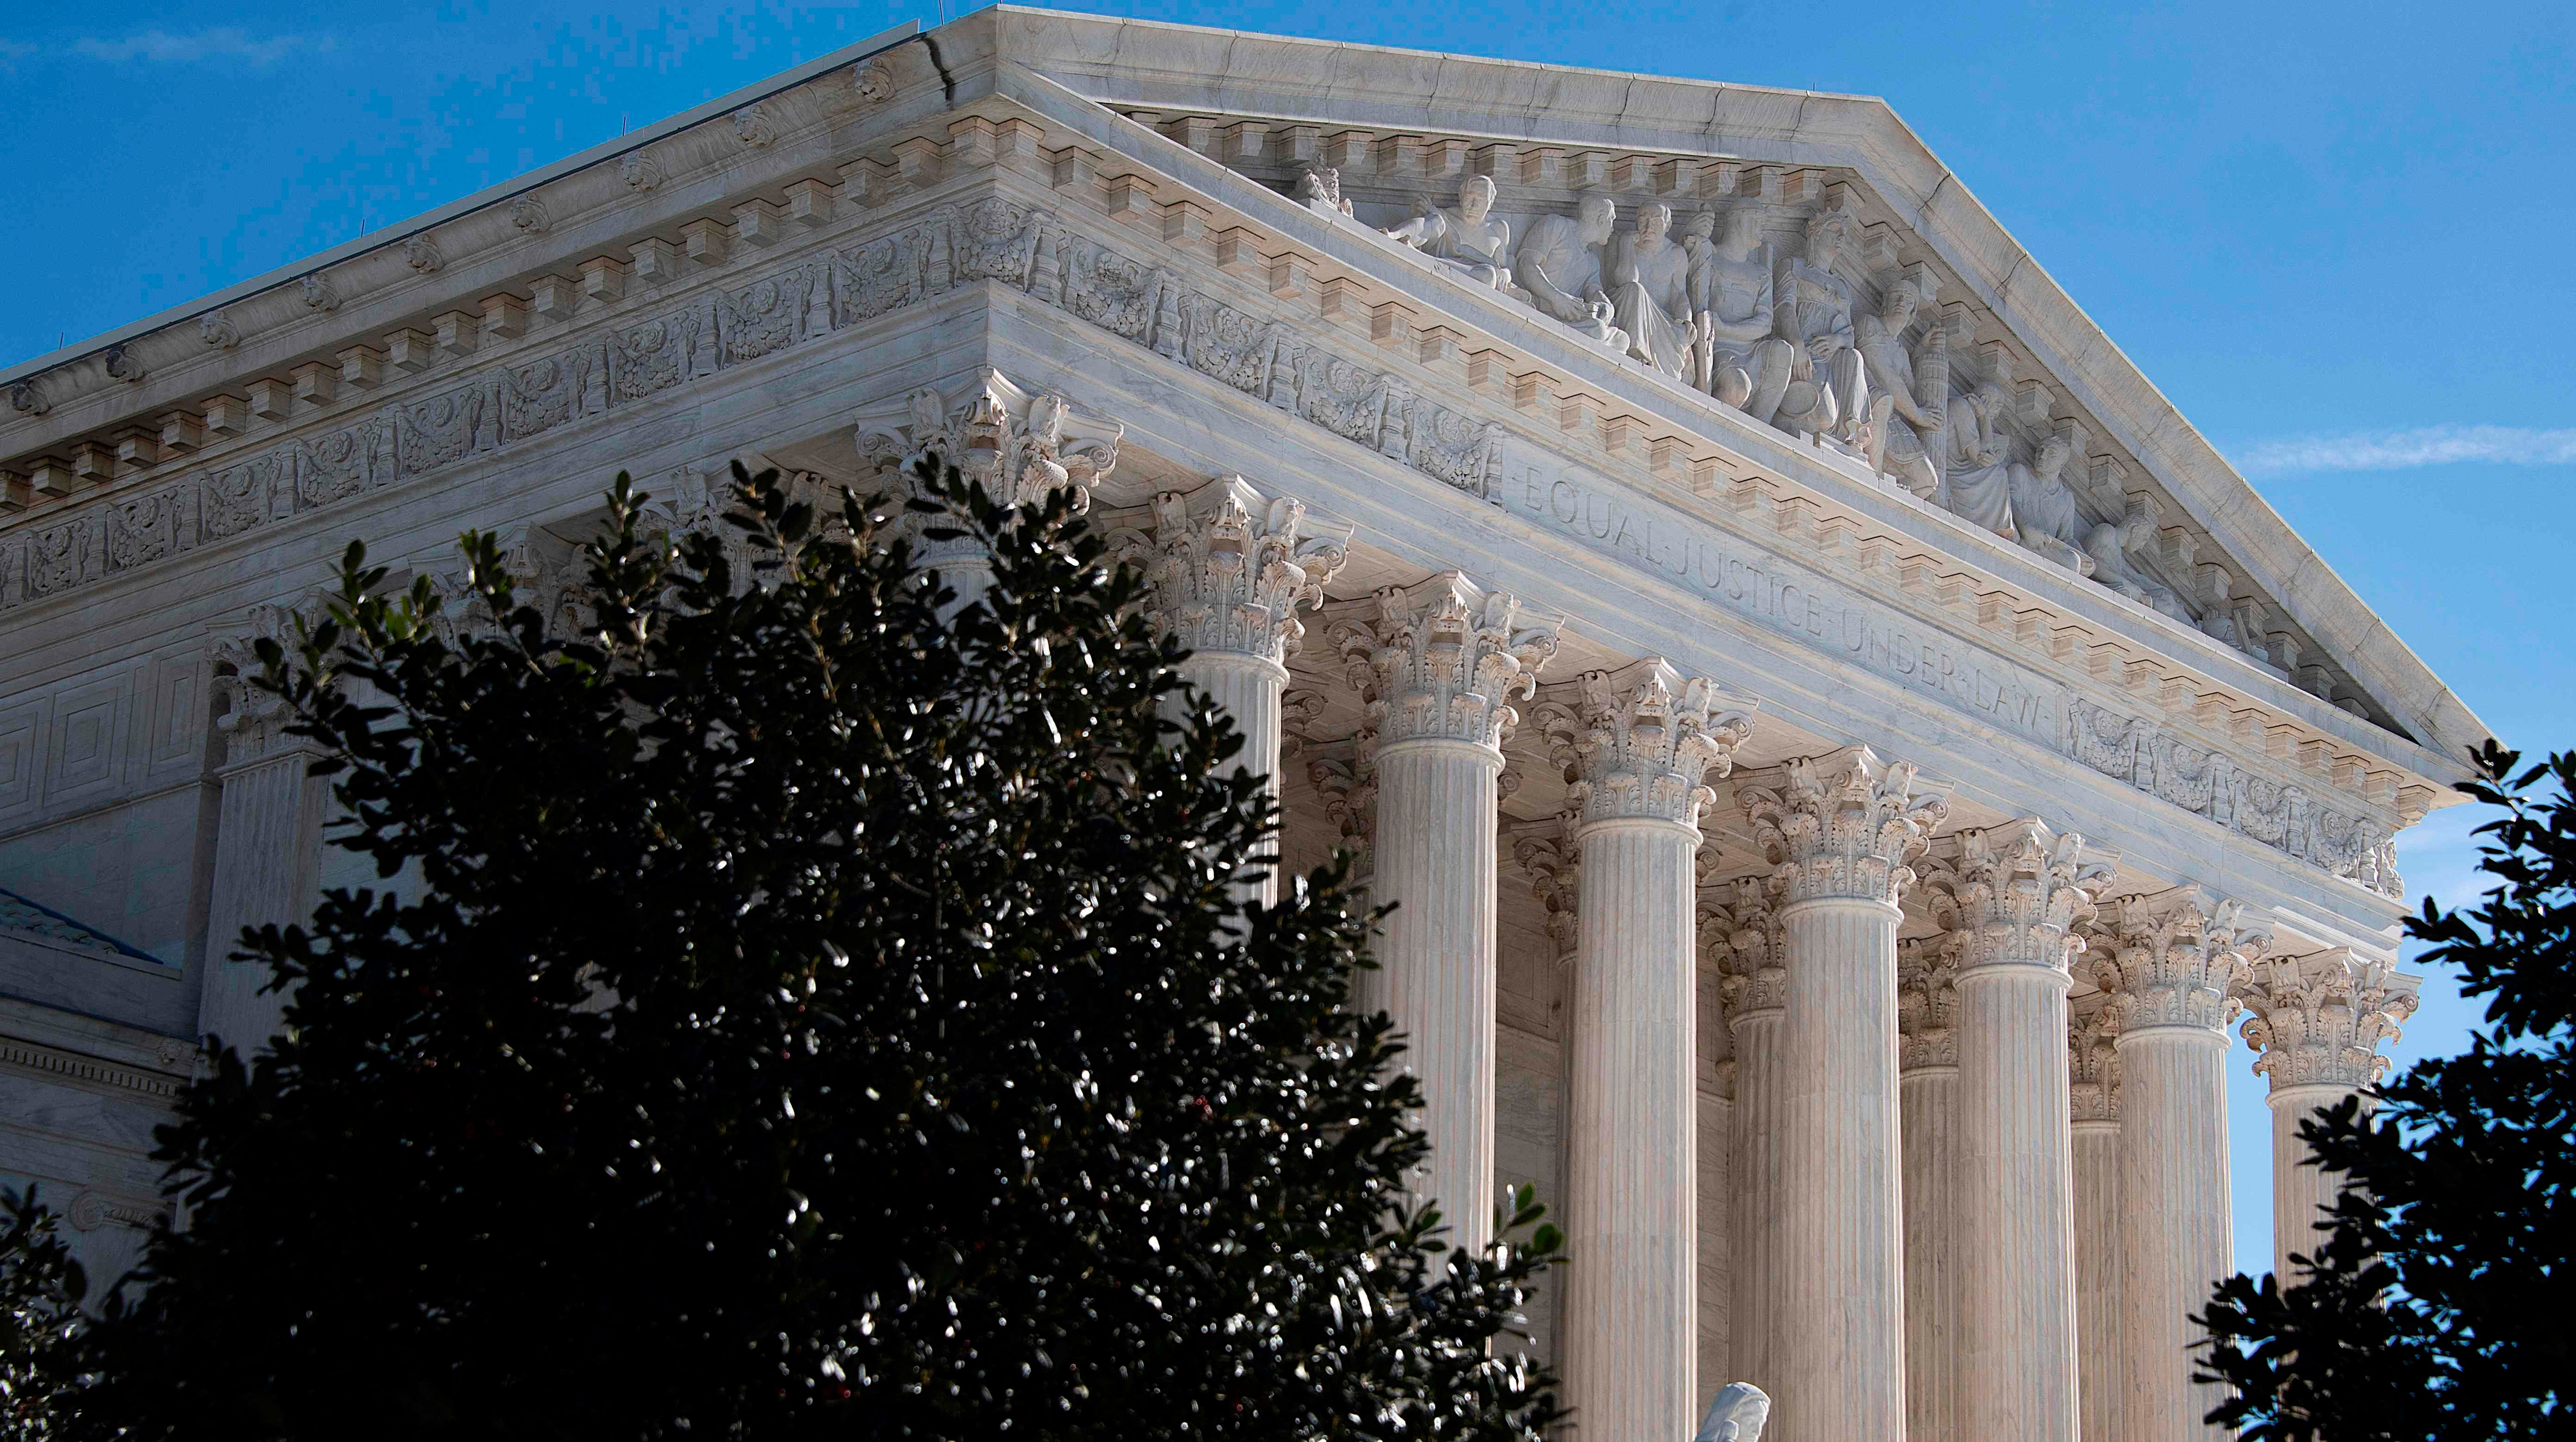 The Supreme Court on Tuesday gave a green light to the Pentagon's partial ban on transgender troops but maintained a yellow light stalling President Trump's effort to end the DACA program for young immigrants.